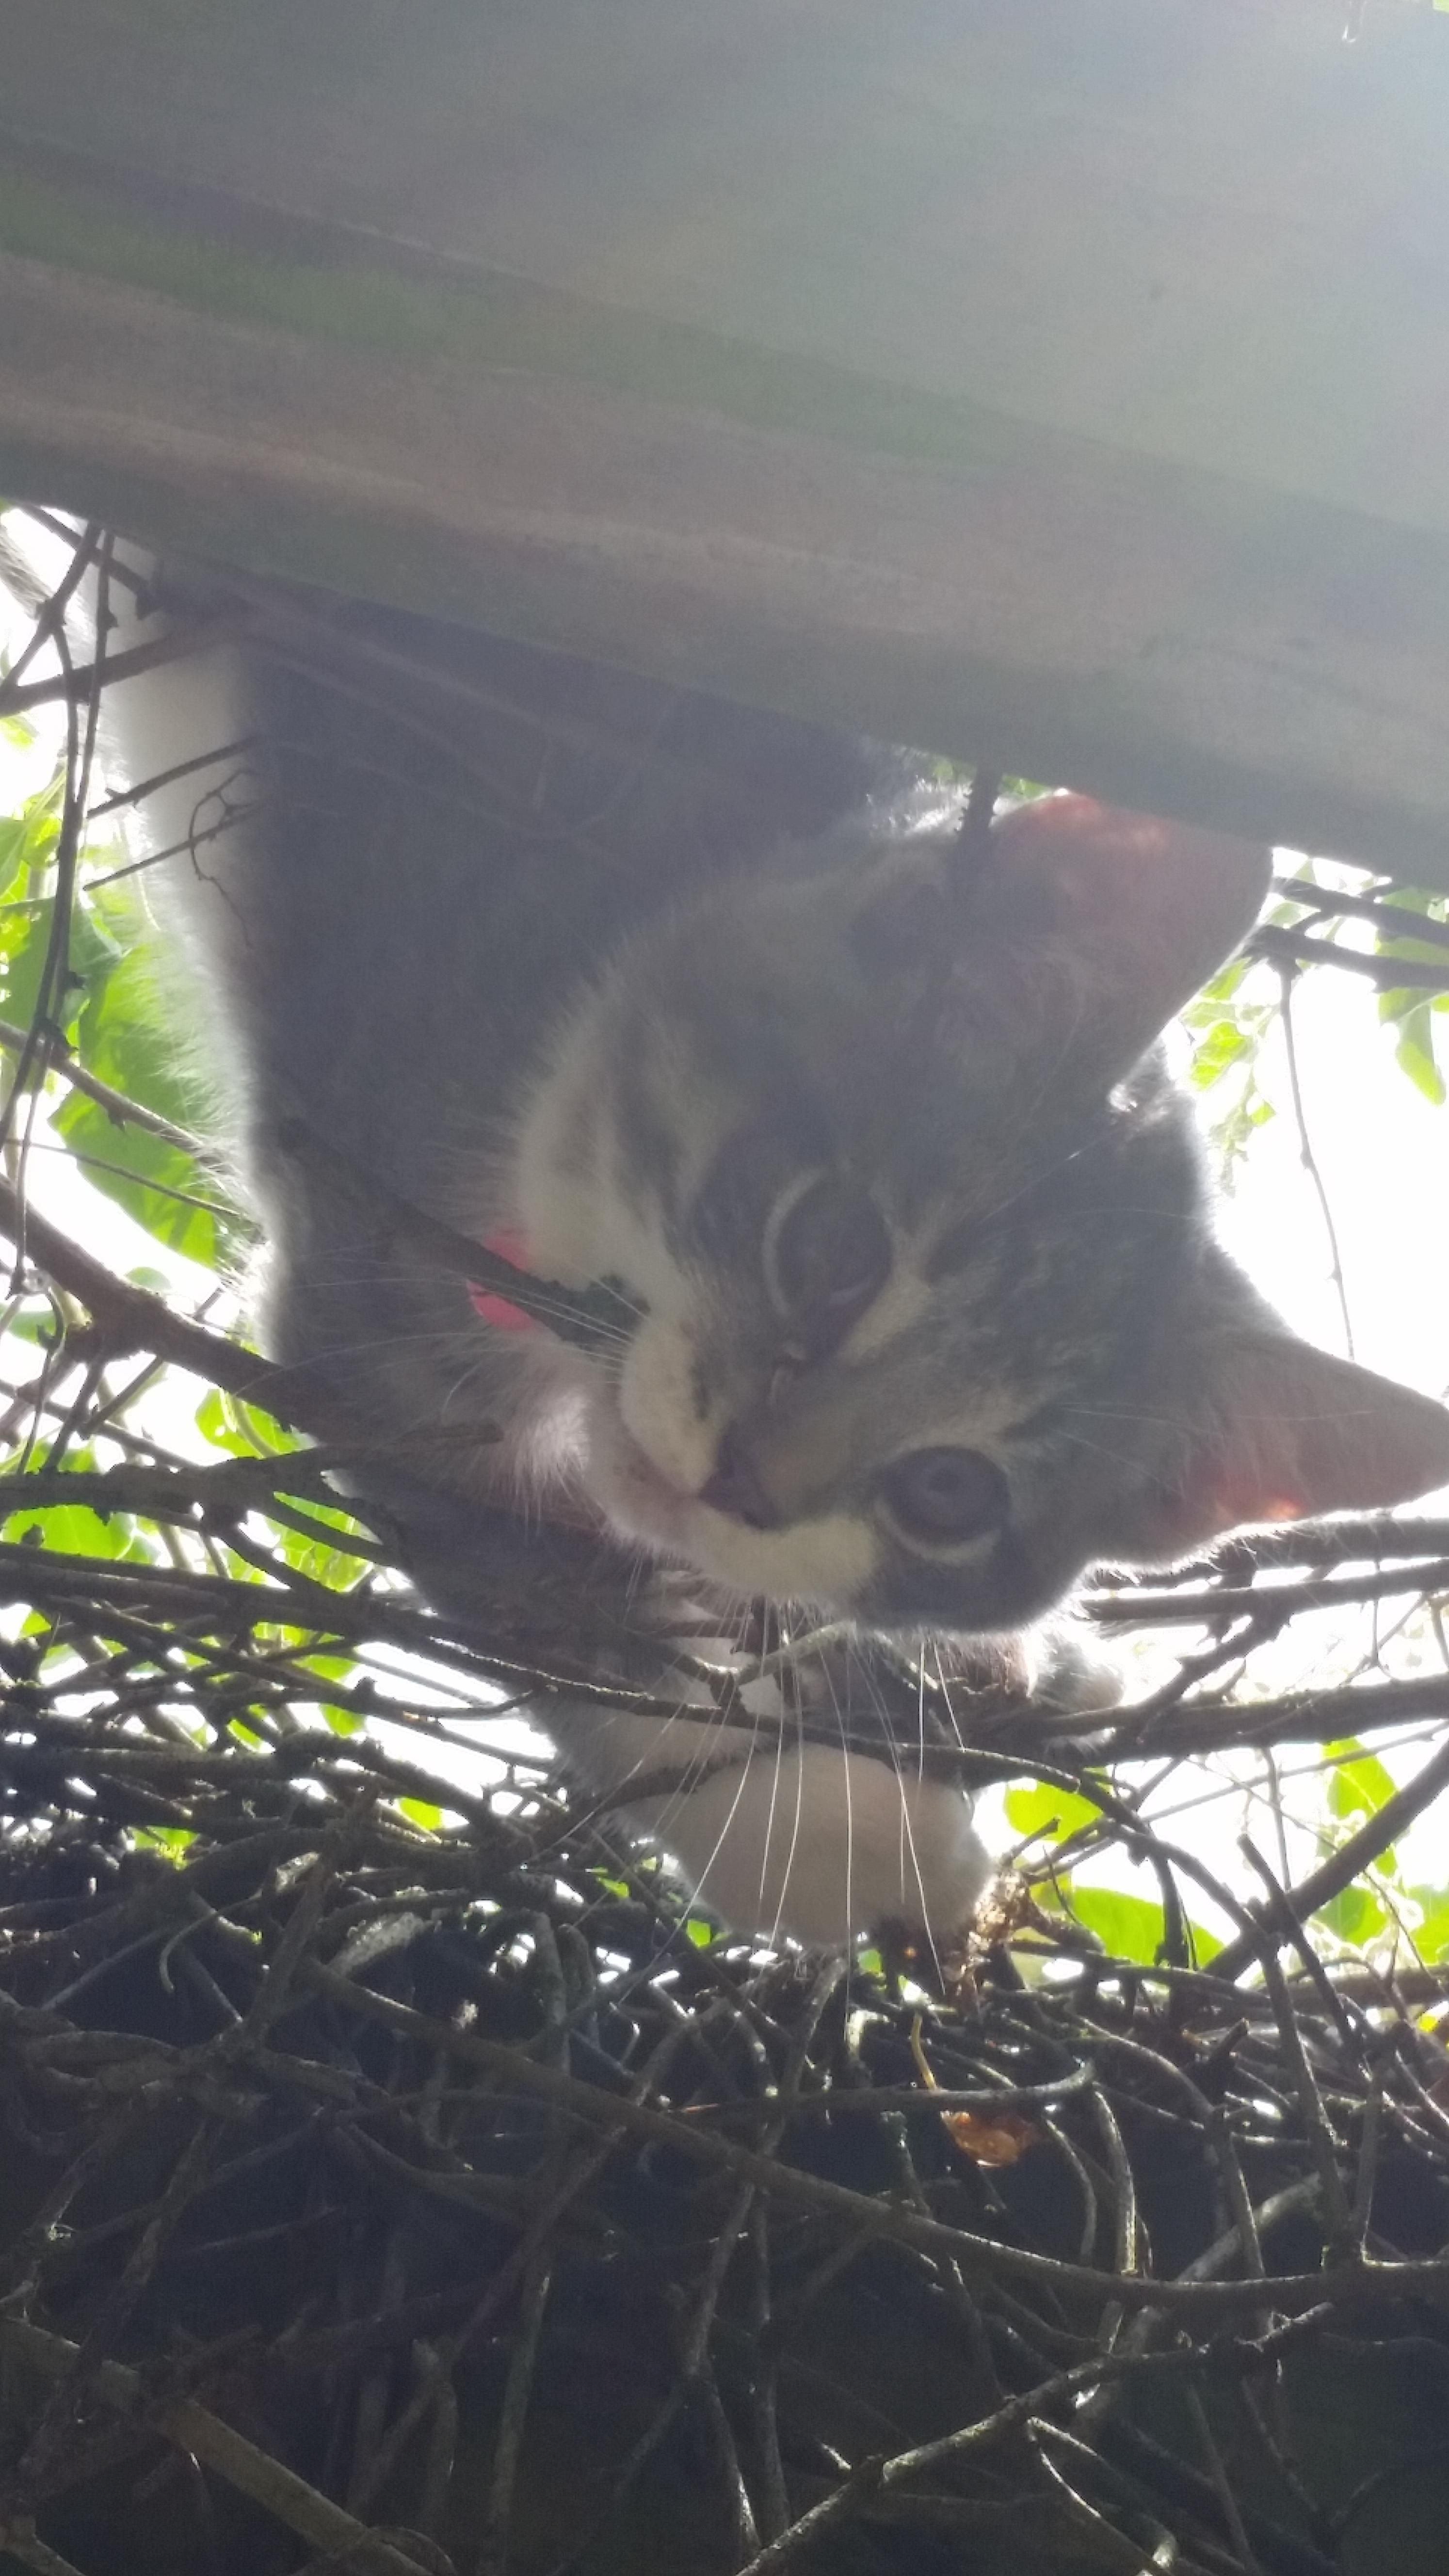 My Friend S Kitten Hanging Out Above The Porch Http Bit Ly 2cow0qo Kitten Cute Animals Hanging Out